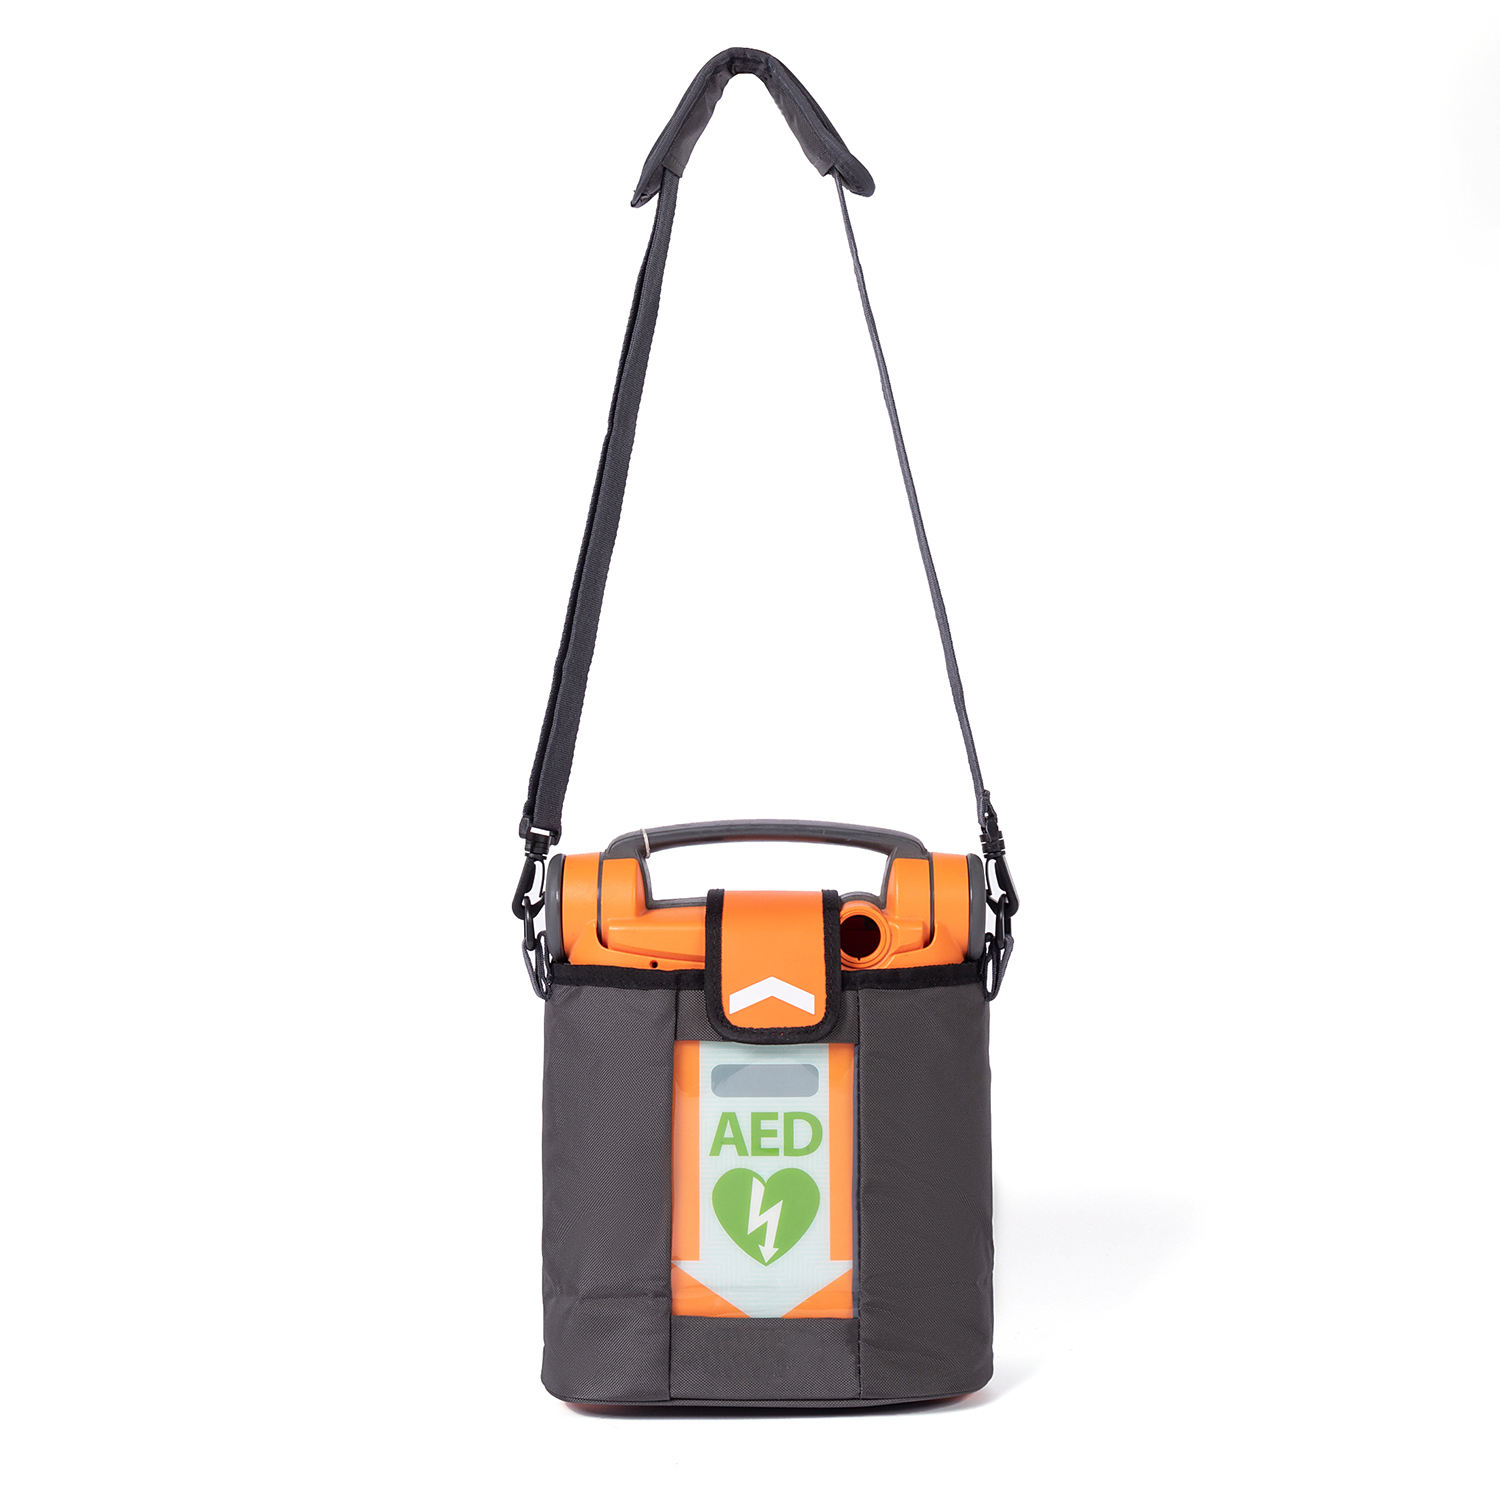 Customized Nylon Waterproosoft AED medical bag carry defibrillator with handle and shoulder strap for first Aid use